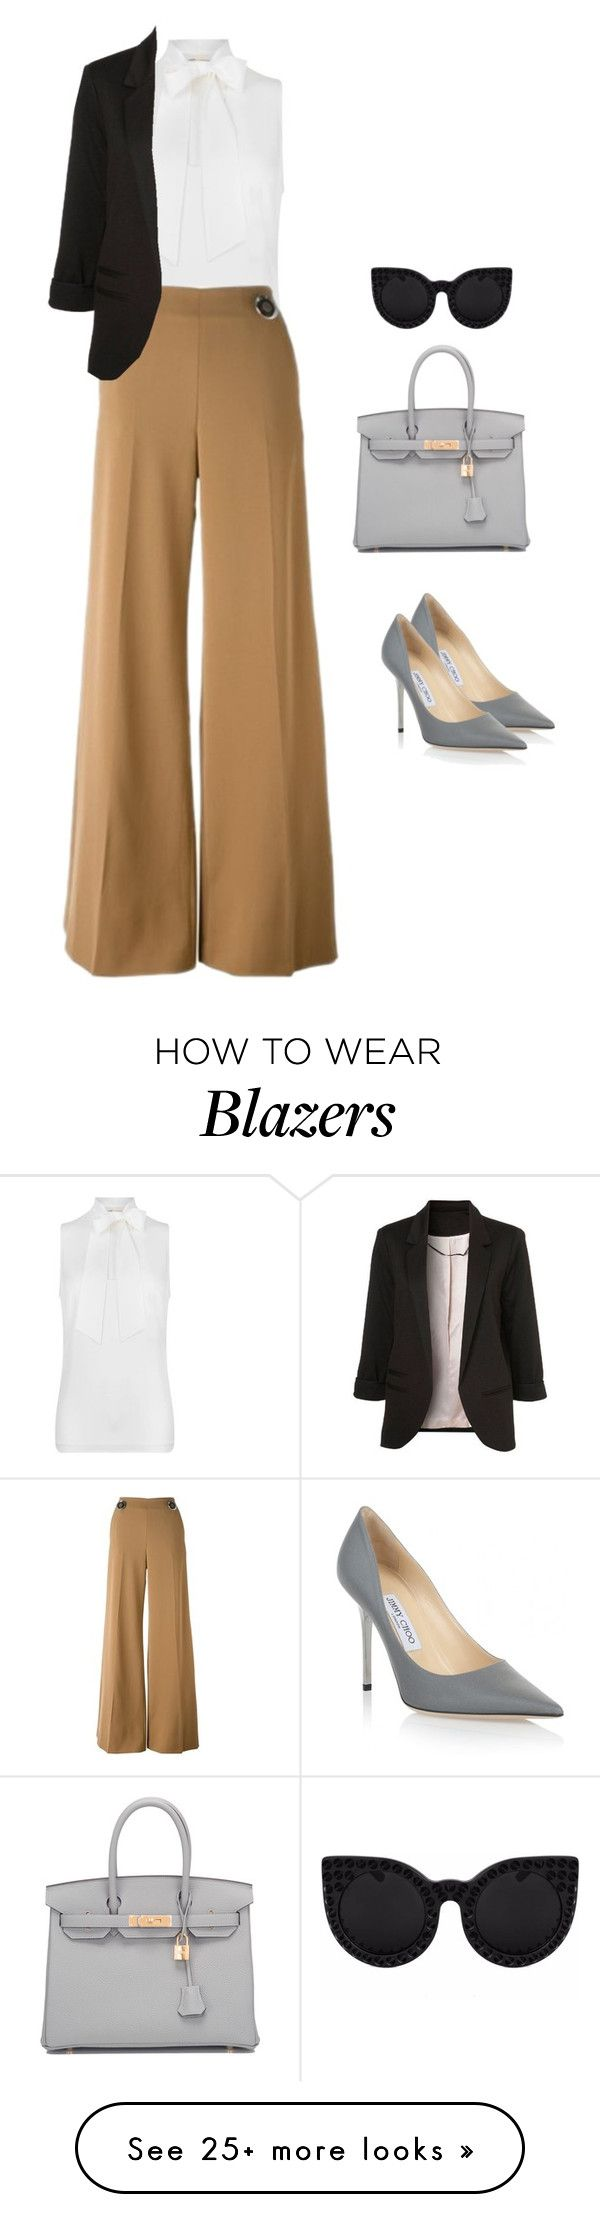 """//business as usual\\"" by edenerickson on Polyvore featuring MICHAEL Michael Kors, STELLA McCARTNEY, Jimmy Choo and Hermès"